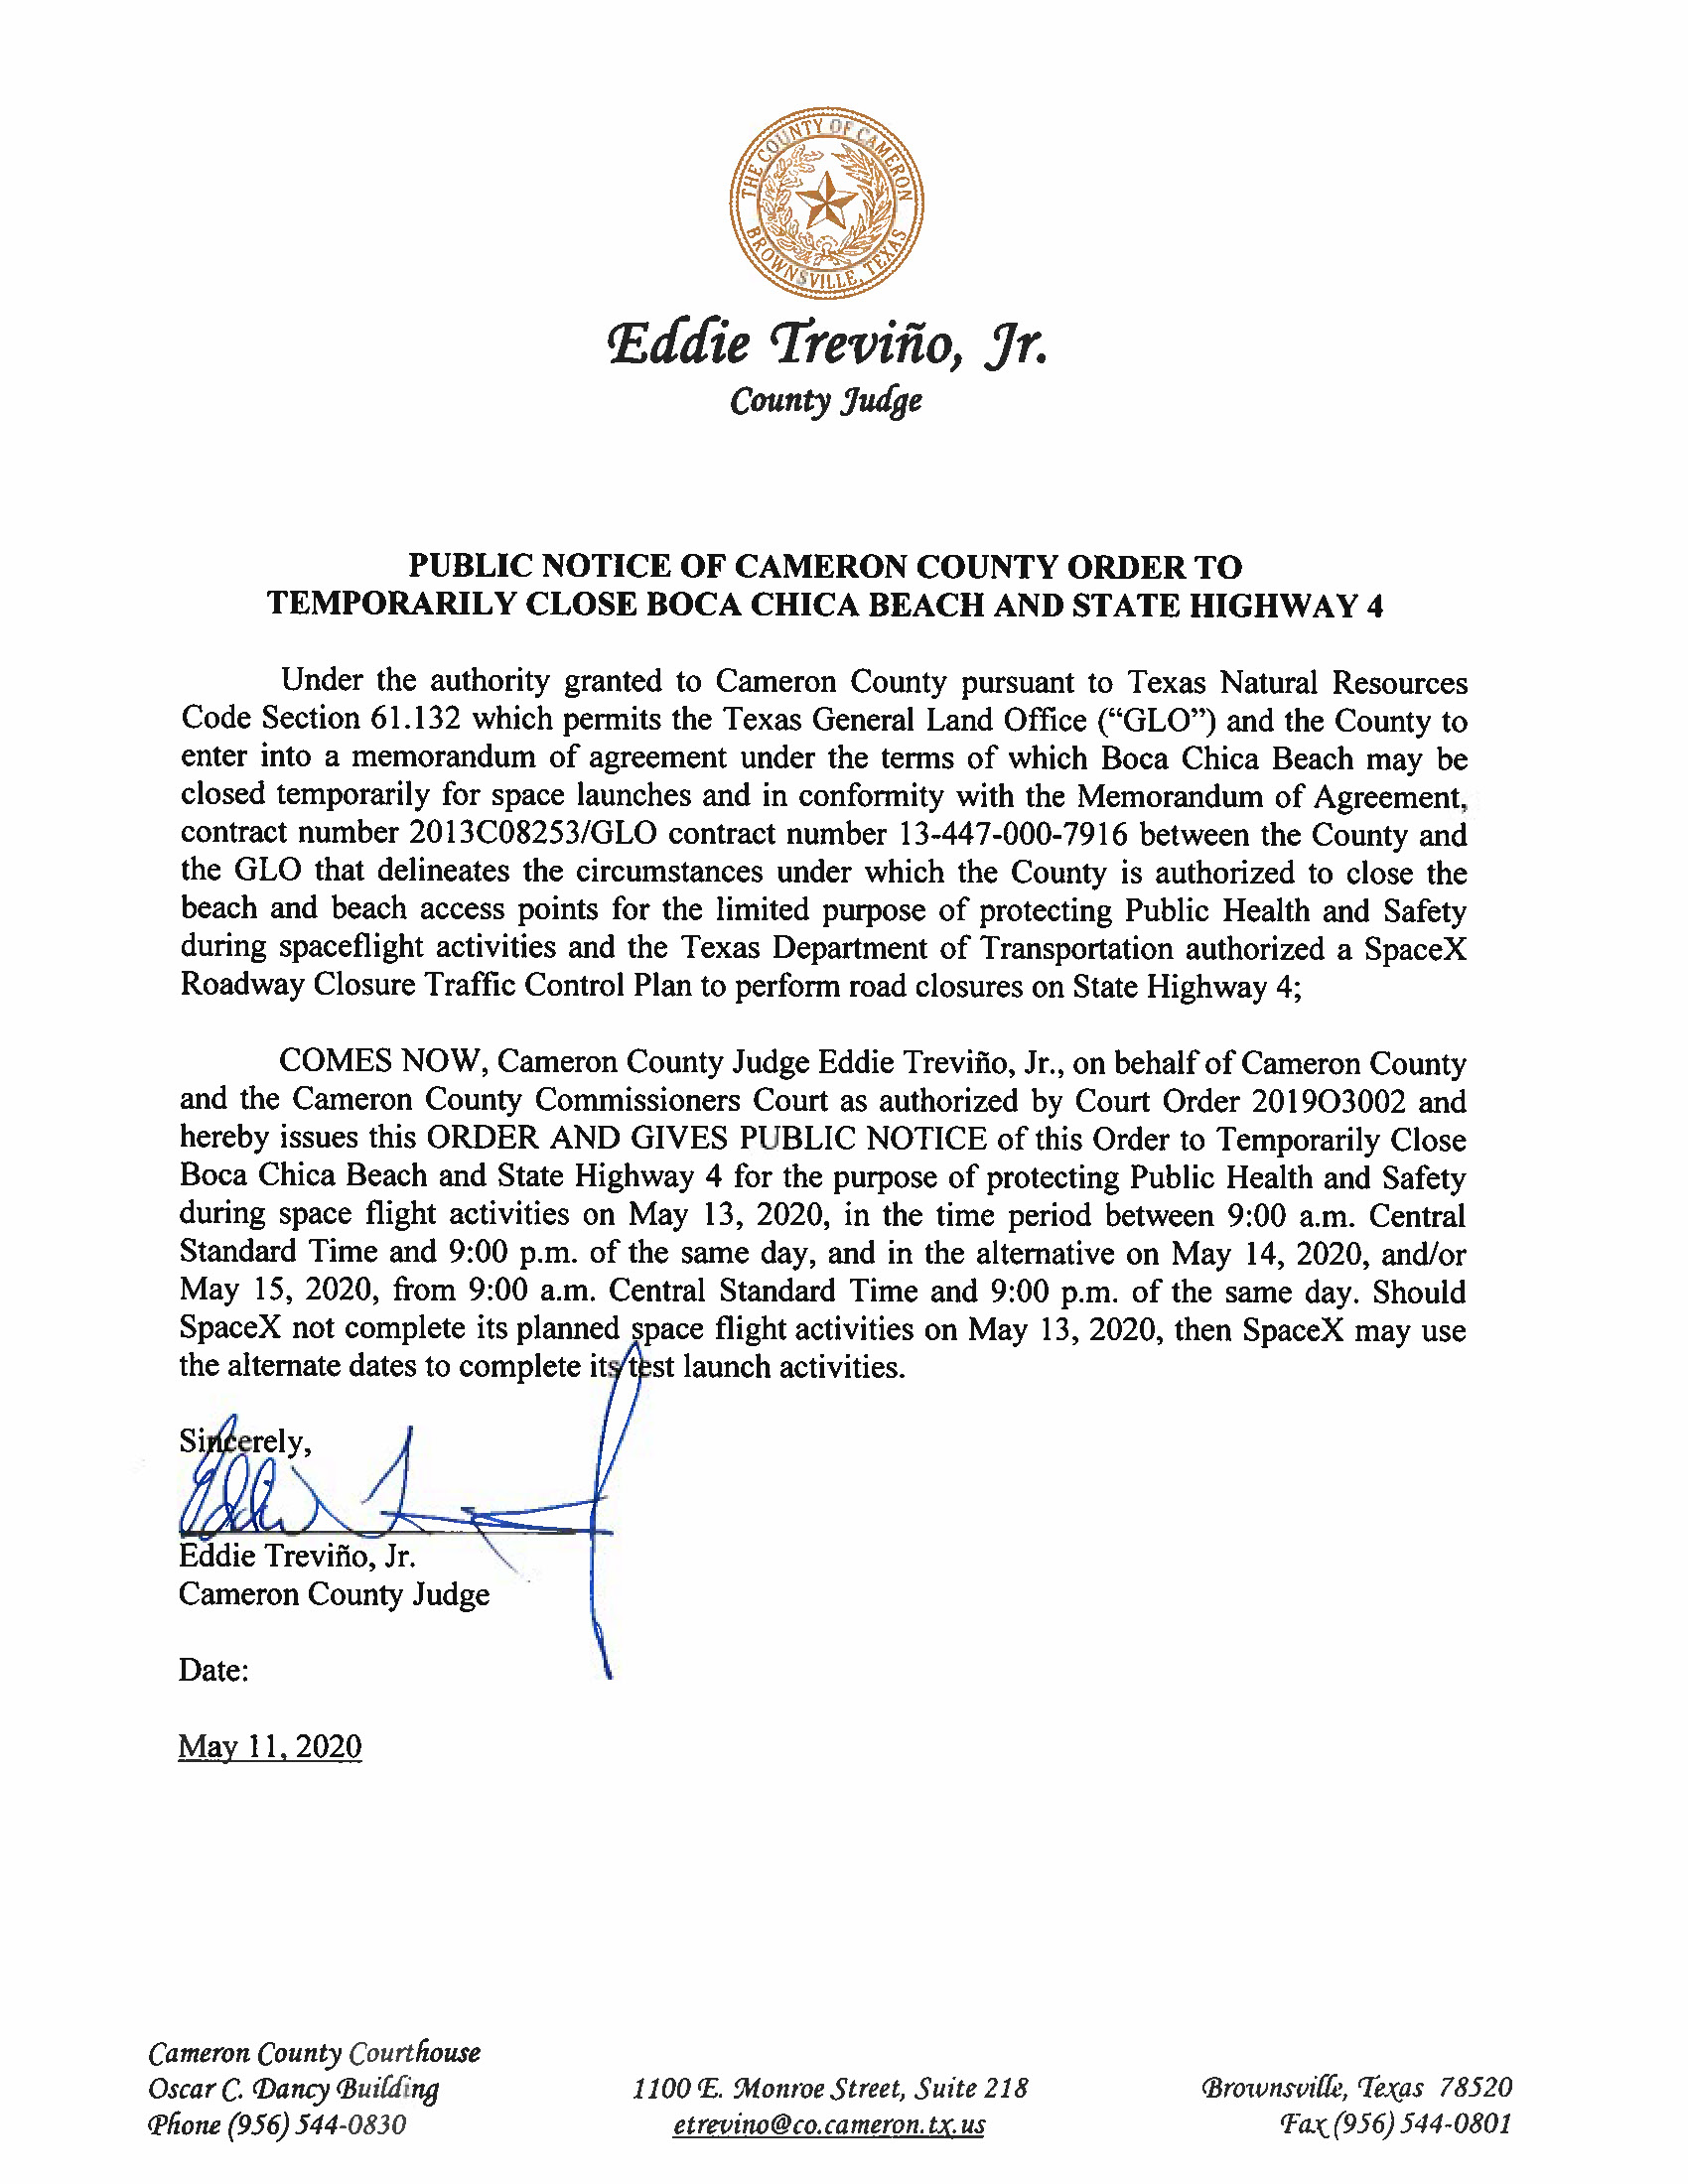 PUBLIC NOTICE OF CAMERON COUNTY ORDER TO TEMP. BEACH CLOSURE AND HWY. 05.13.20 Page 1